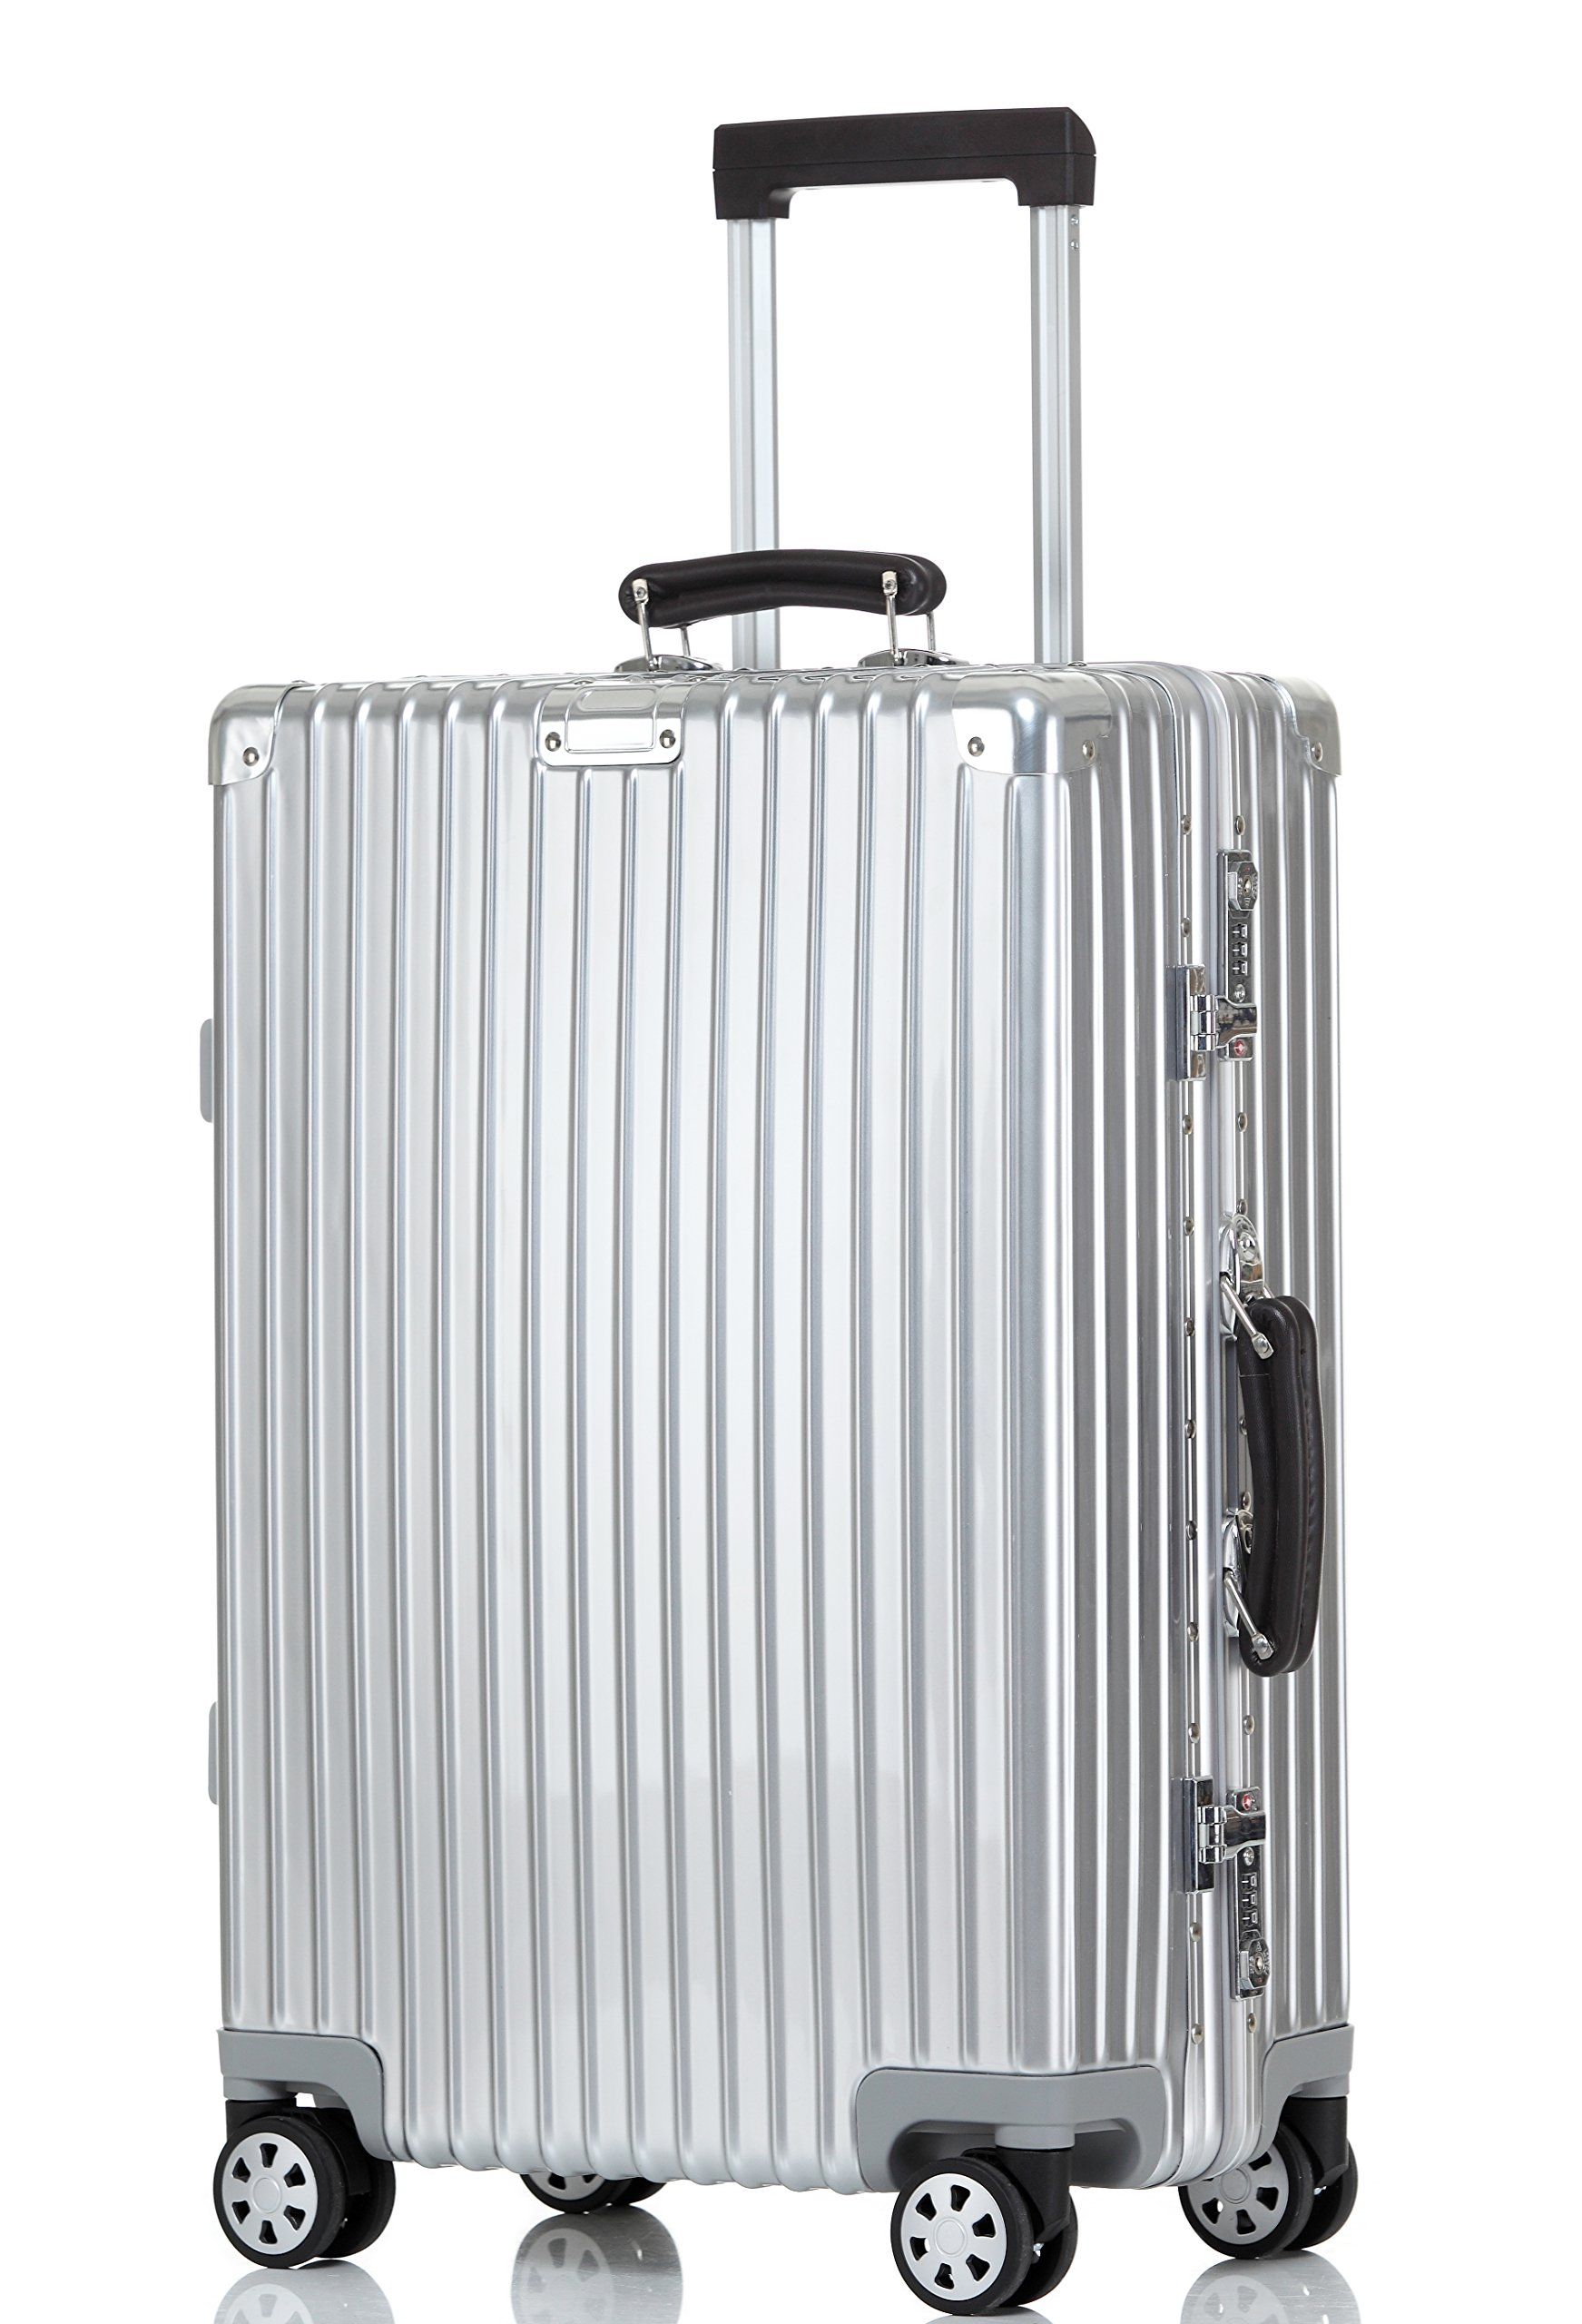 Luggage Aluminum Frame Hardshell Spinner Suitcase TSA Approved 28'', Silver